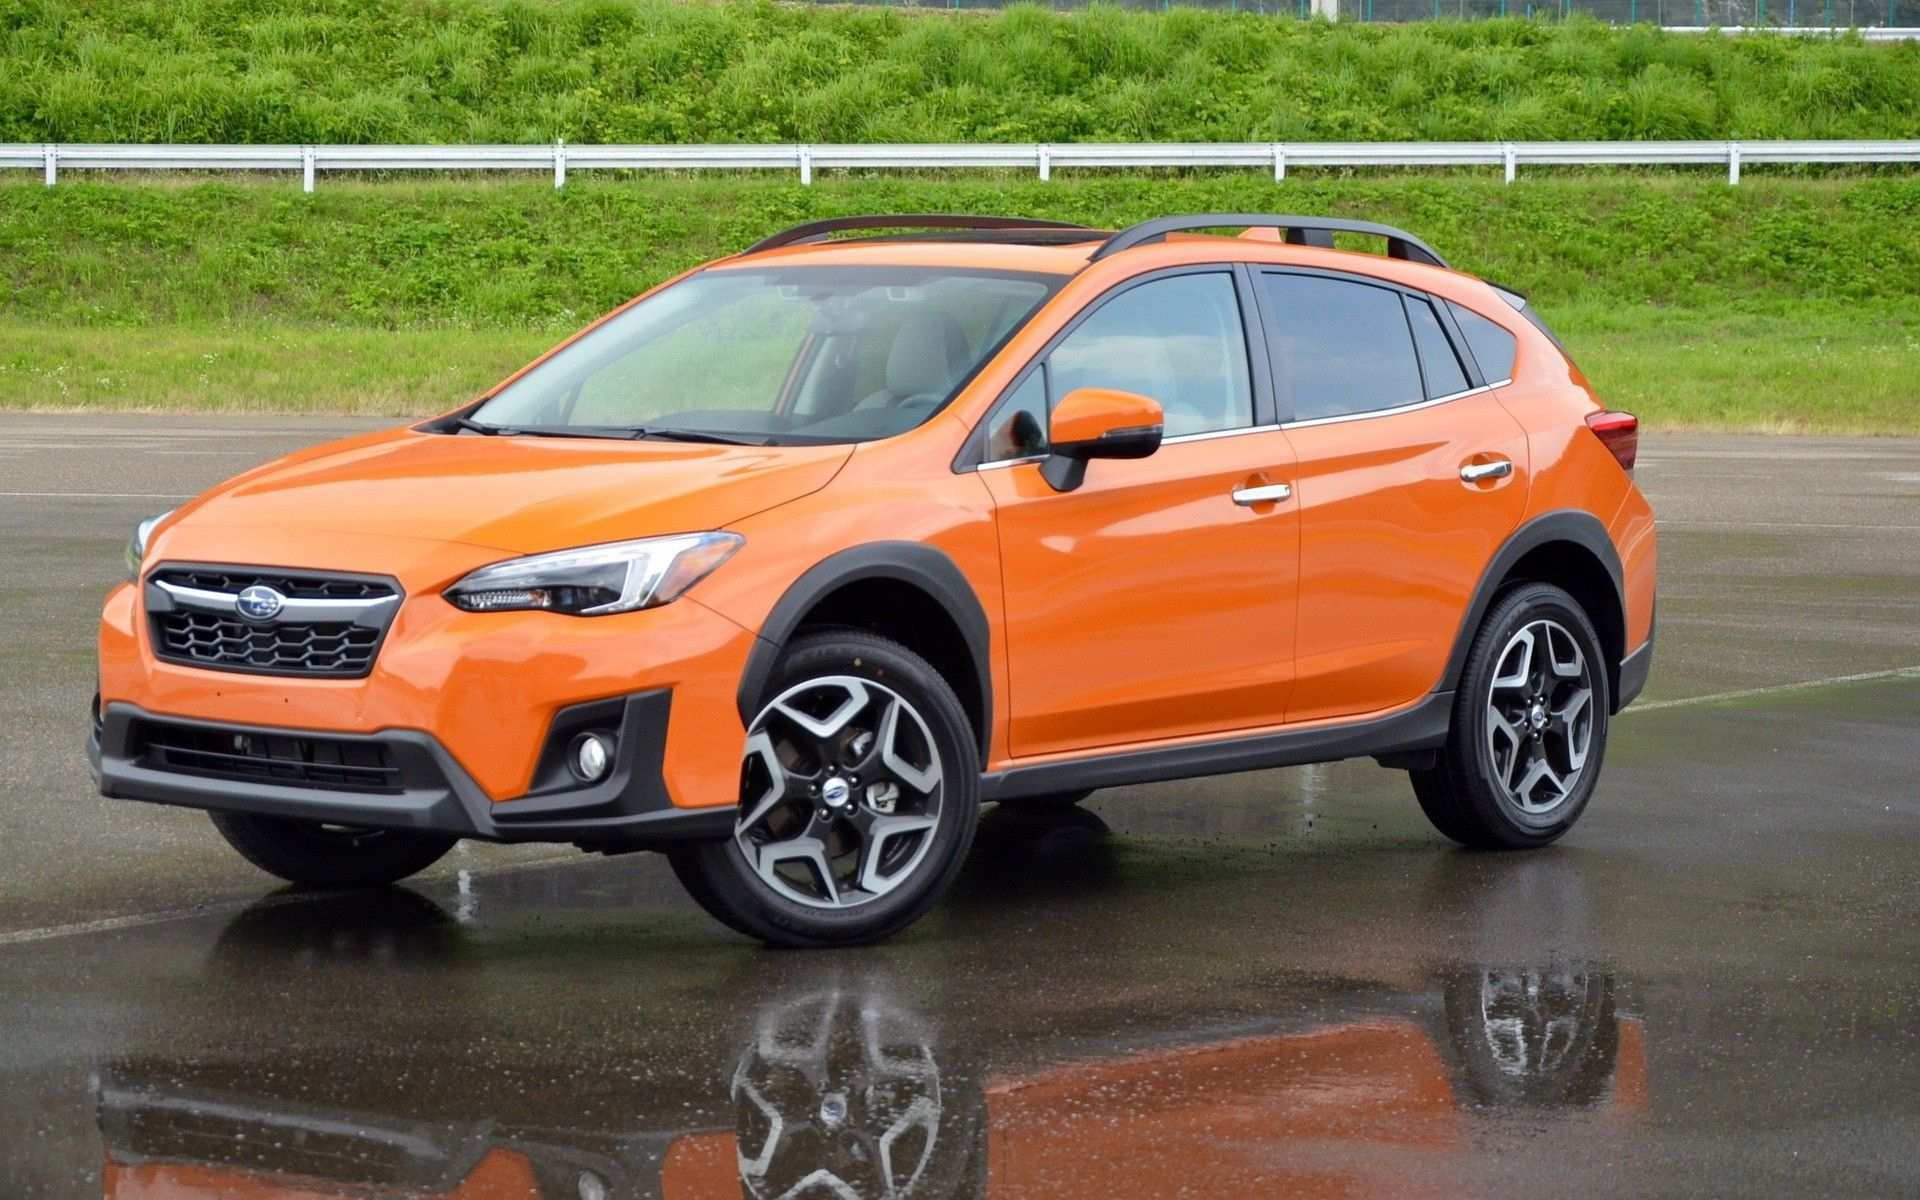 66 New 2020 Subaru Crosstrek Hybridand Redesign with 2020 Subaru Crosstrek Hybridand